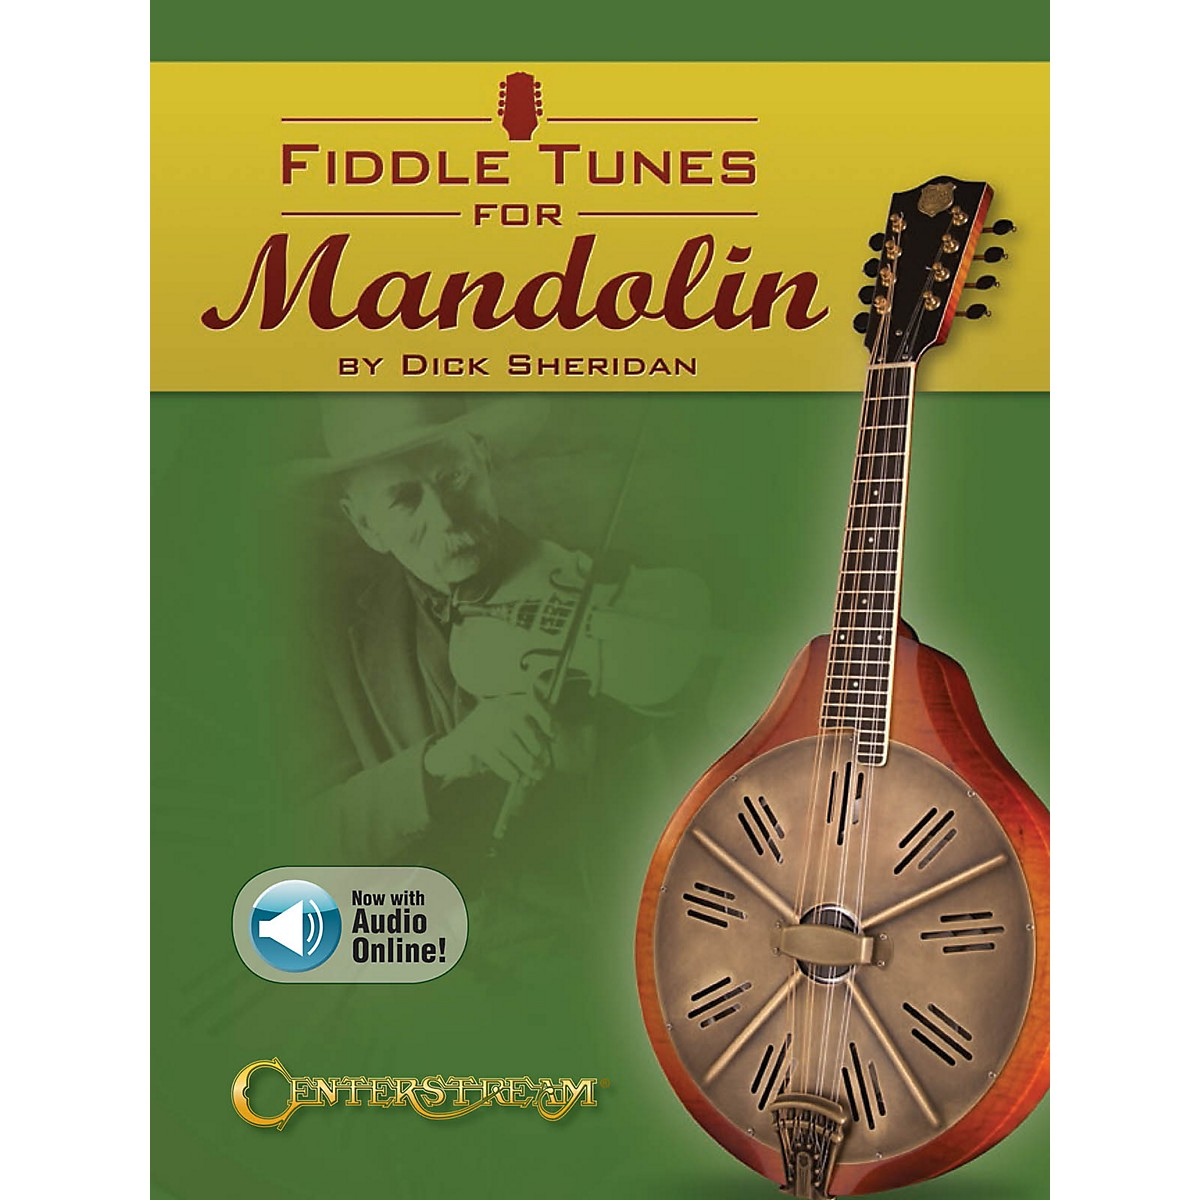 Centerstream Publishing Fiddle Tunes for Mandolin Fretted Series Softcover Audio Online Written by Dick Sheridan